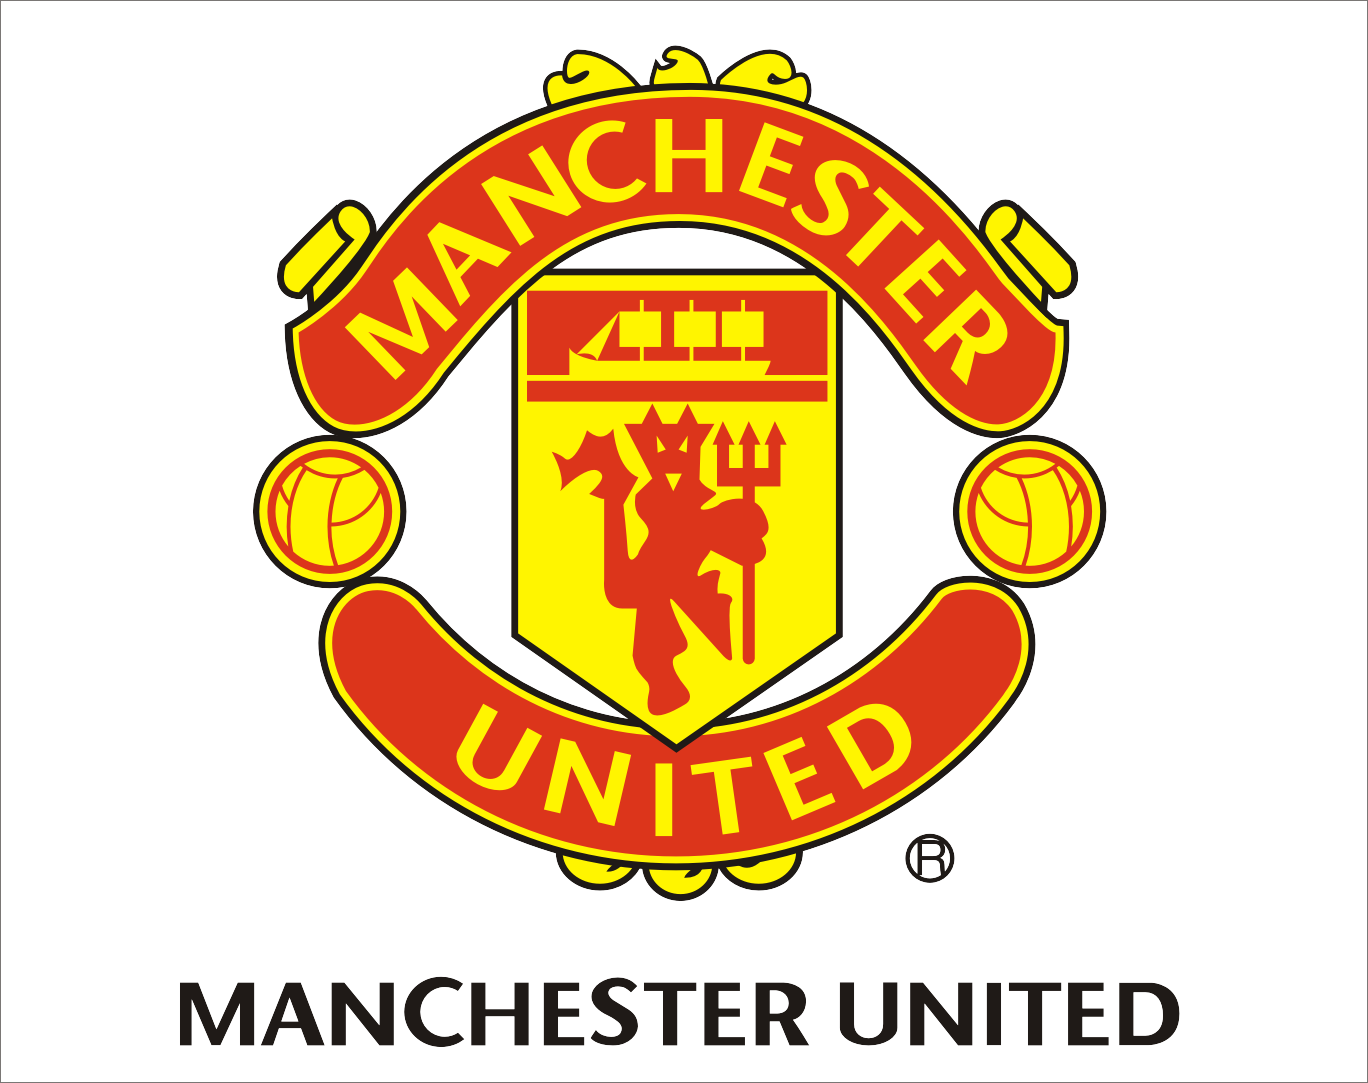 Manchester United Logo Design - http://manchesterunitedwallpapers pluspng.com/ manchester-united - Manchester United Logo PNG